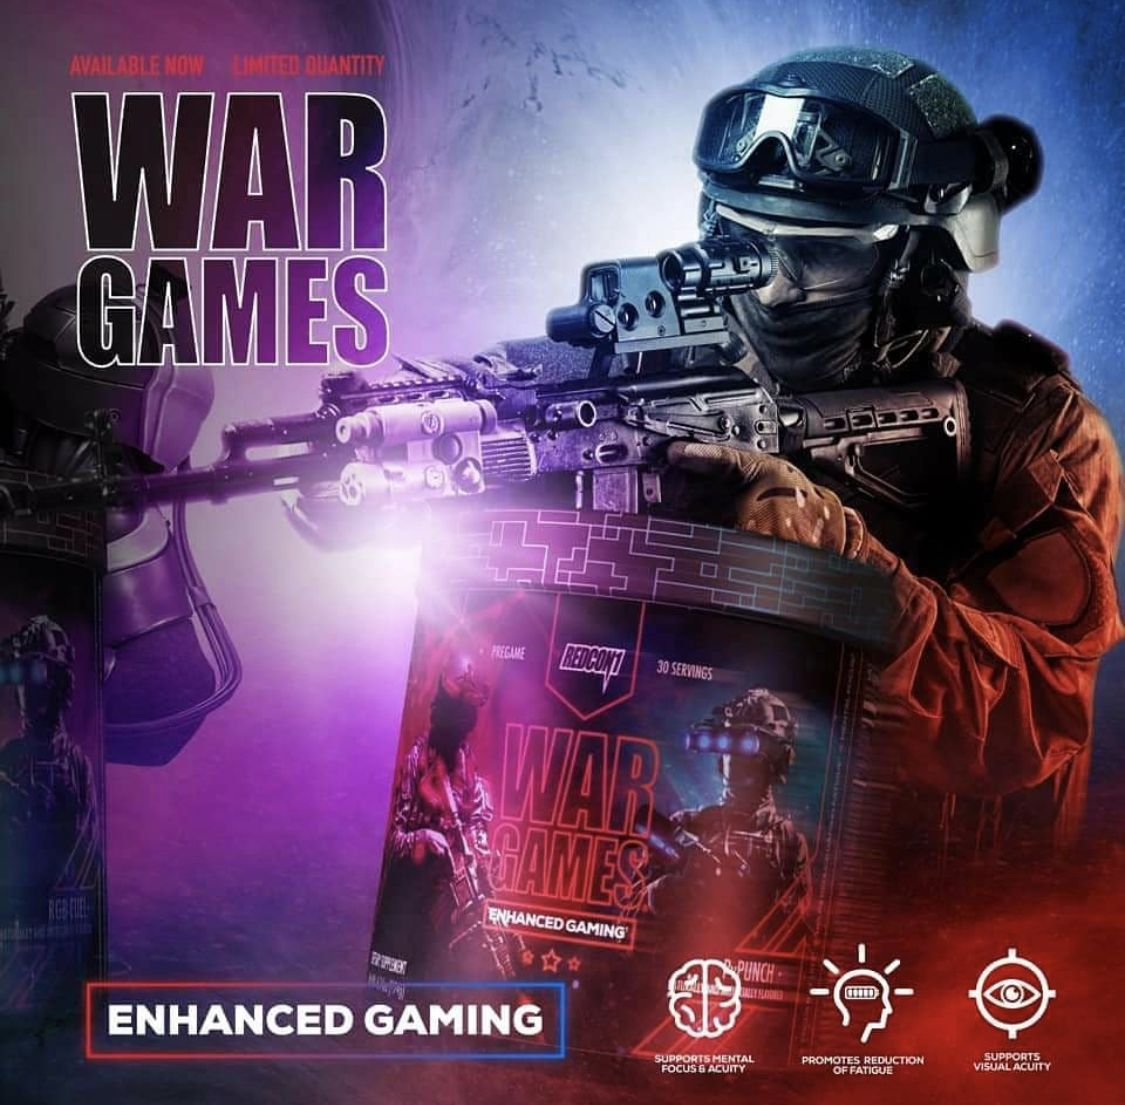 War Games How To Increase Energy Improve Cognitive Function Video Game Party